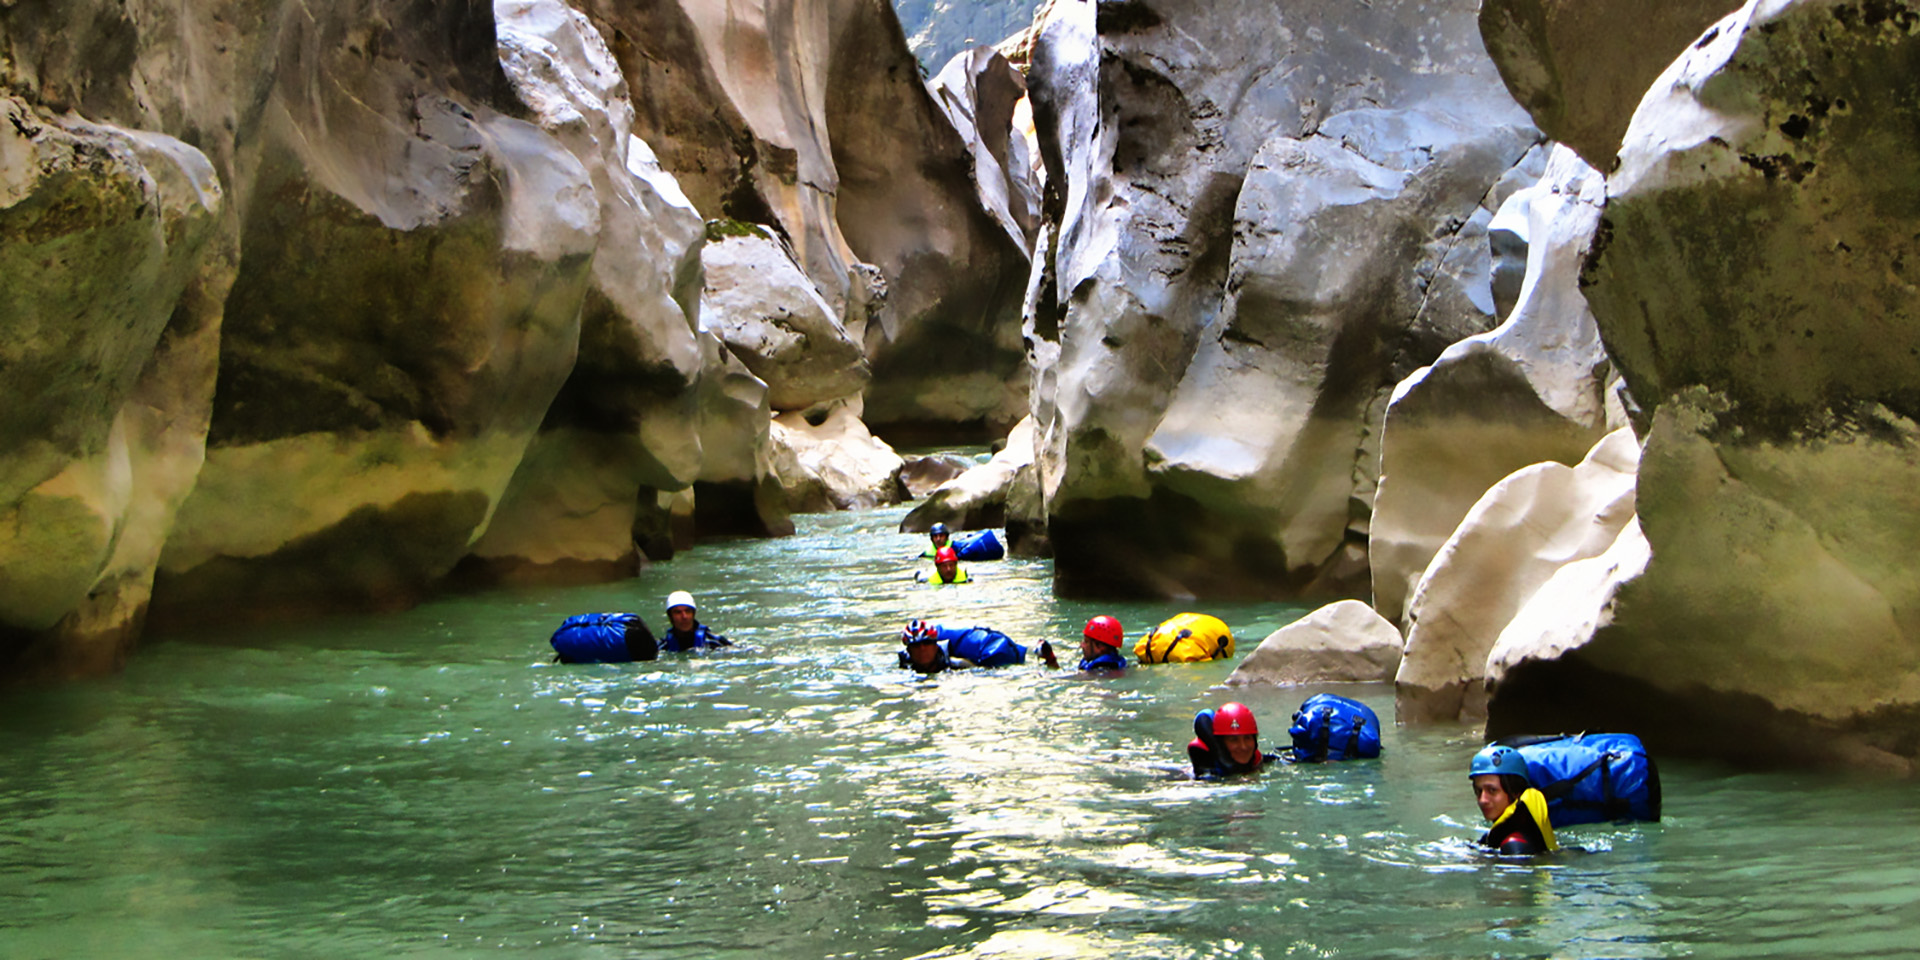 comment faire du canyoning